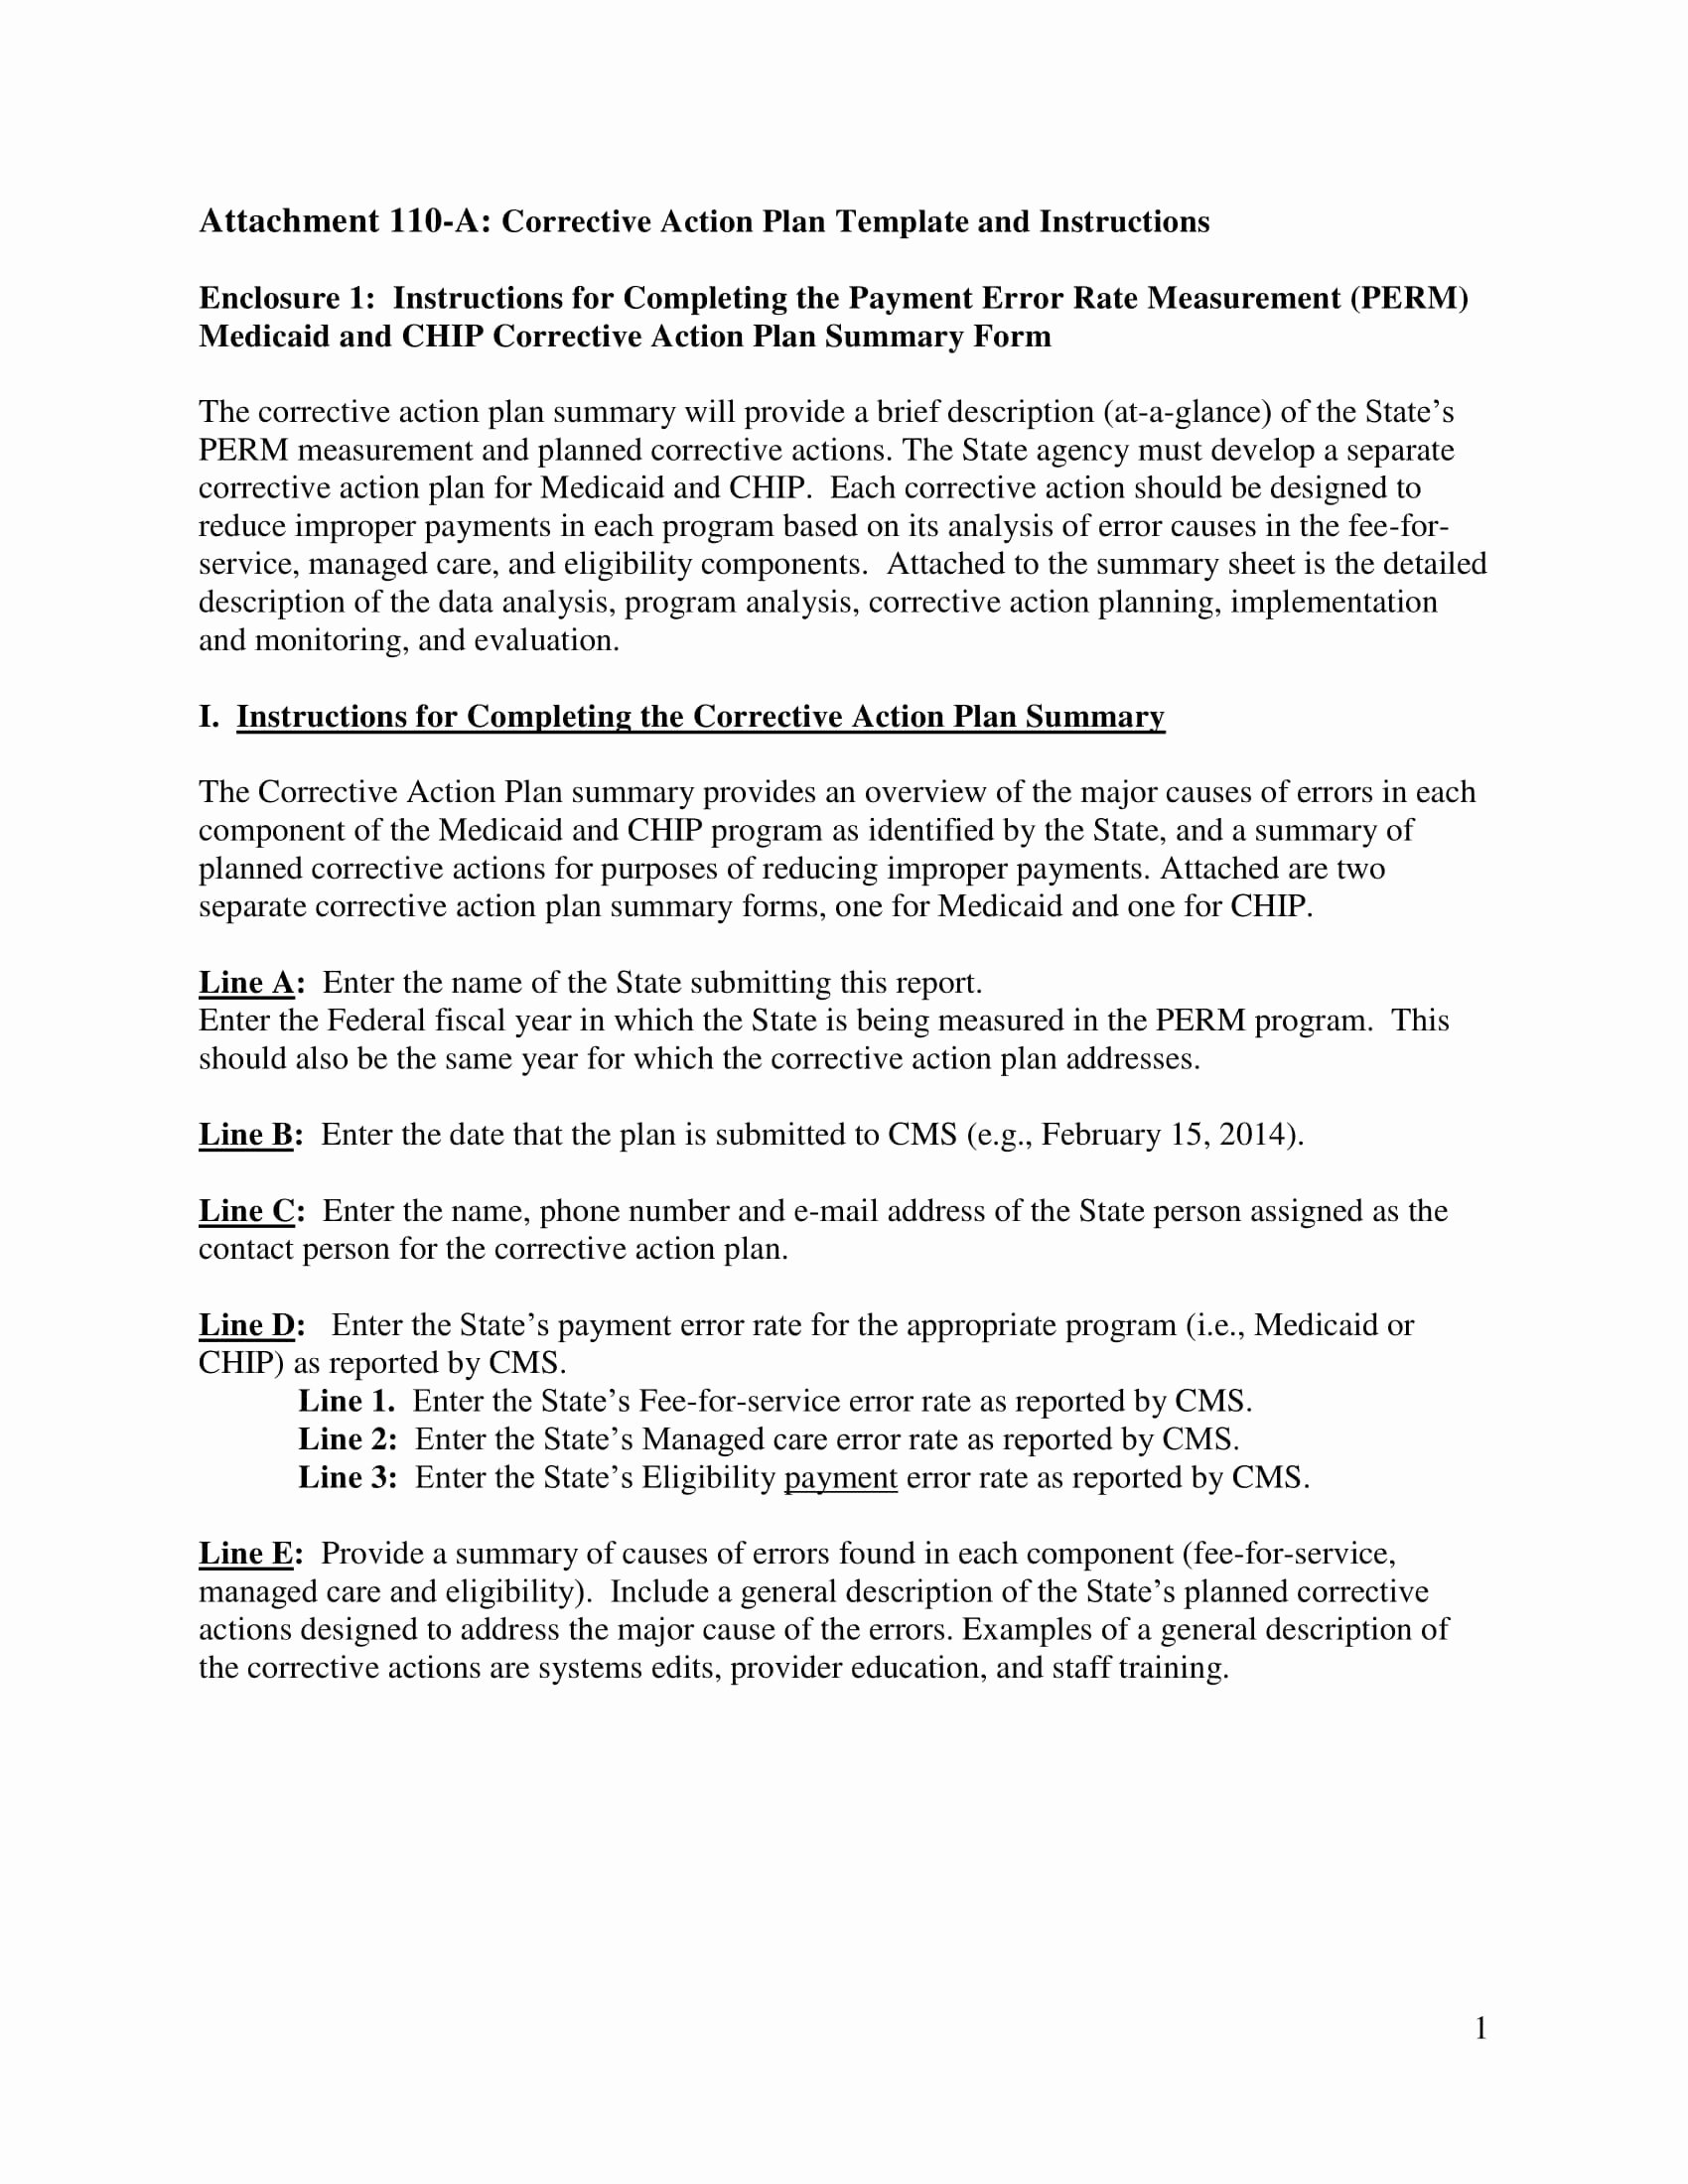 Behavior Action Plan Template Fresh 11 Corrective Action Plan Template Examples Pdf Word